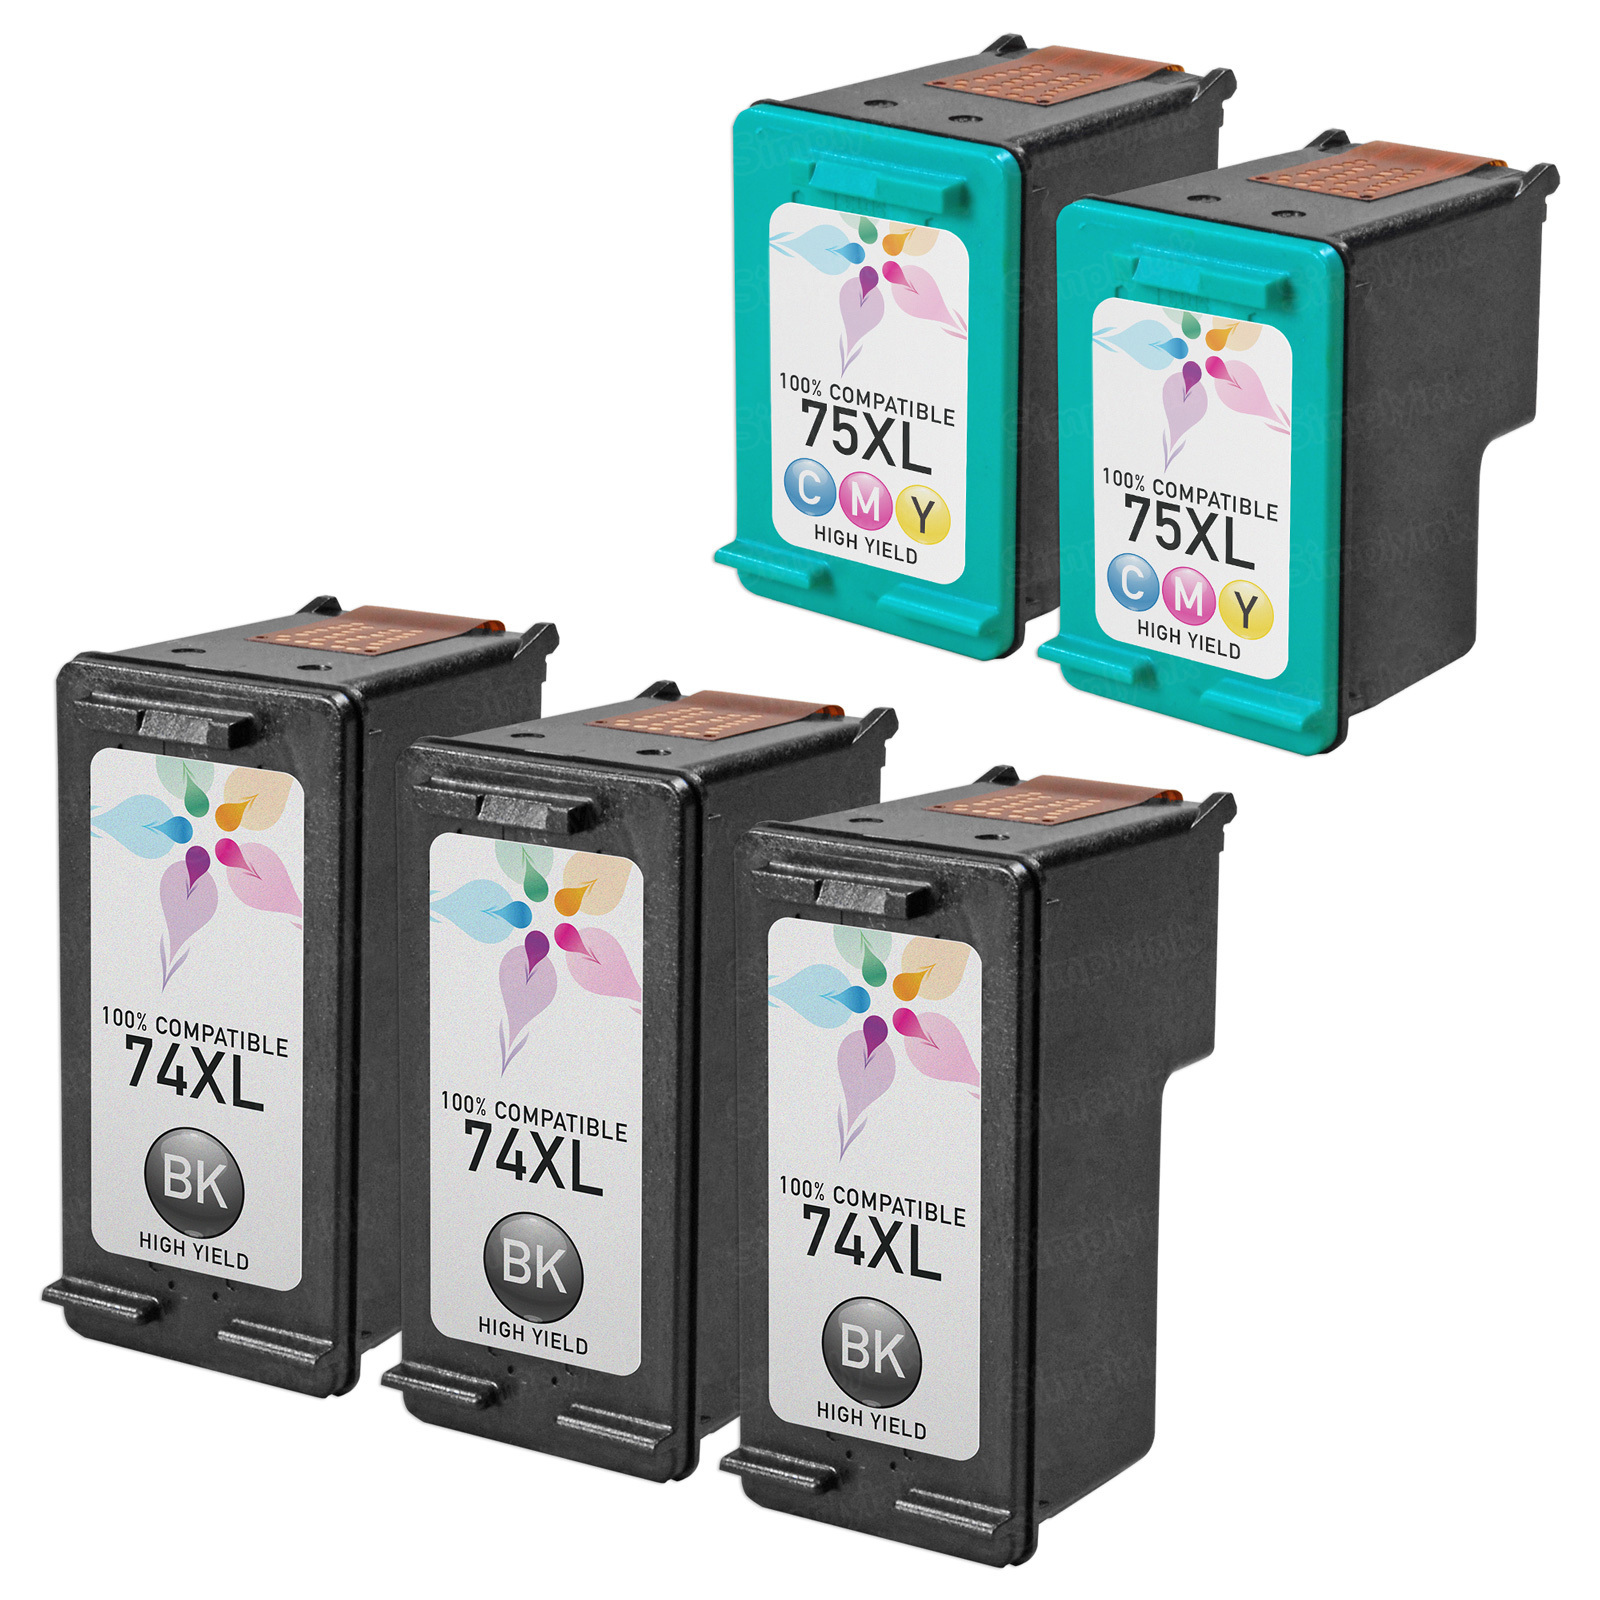 Remanufactured Bulk Set of 5 Ink Cartridges to Replace HP 74XL & HP 75XL (3 BK, 2 CLR)